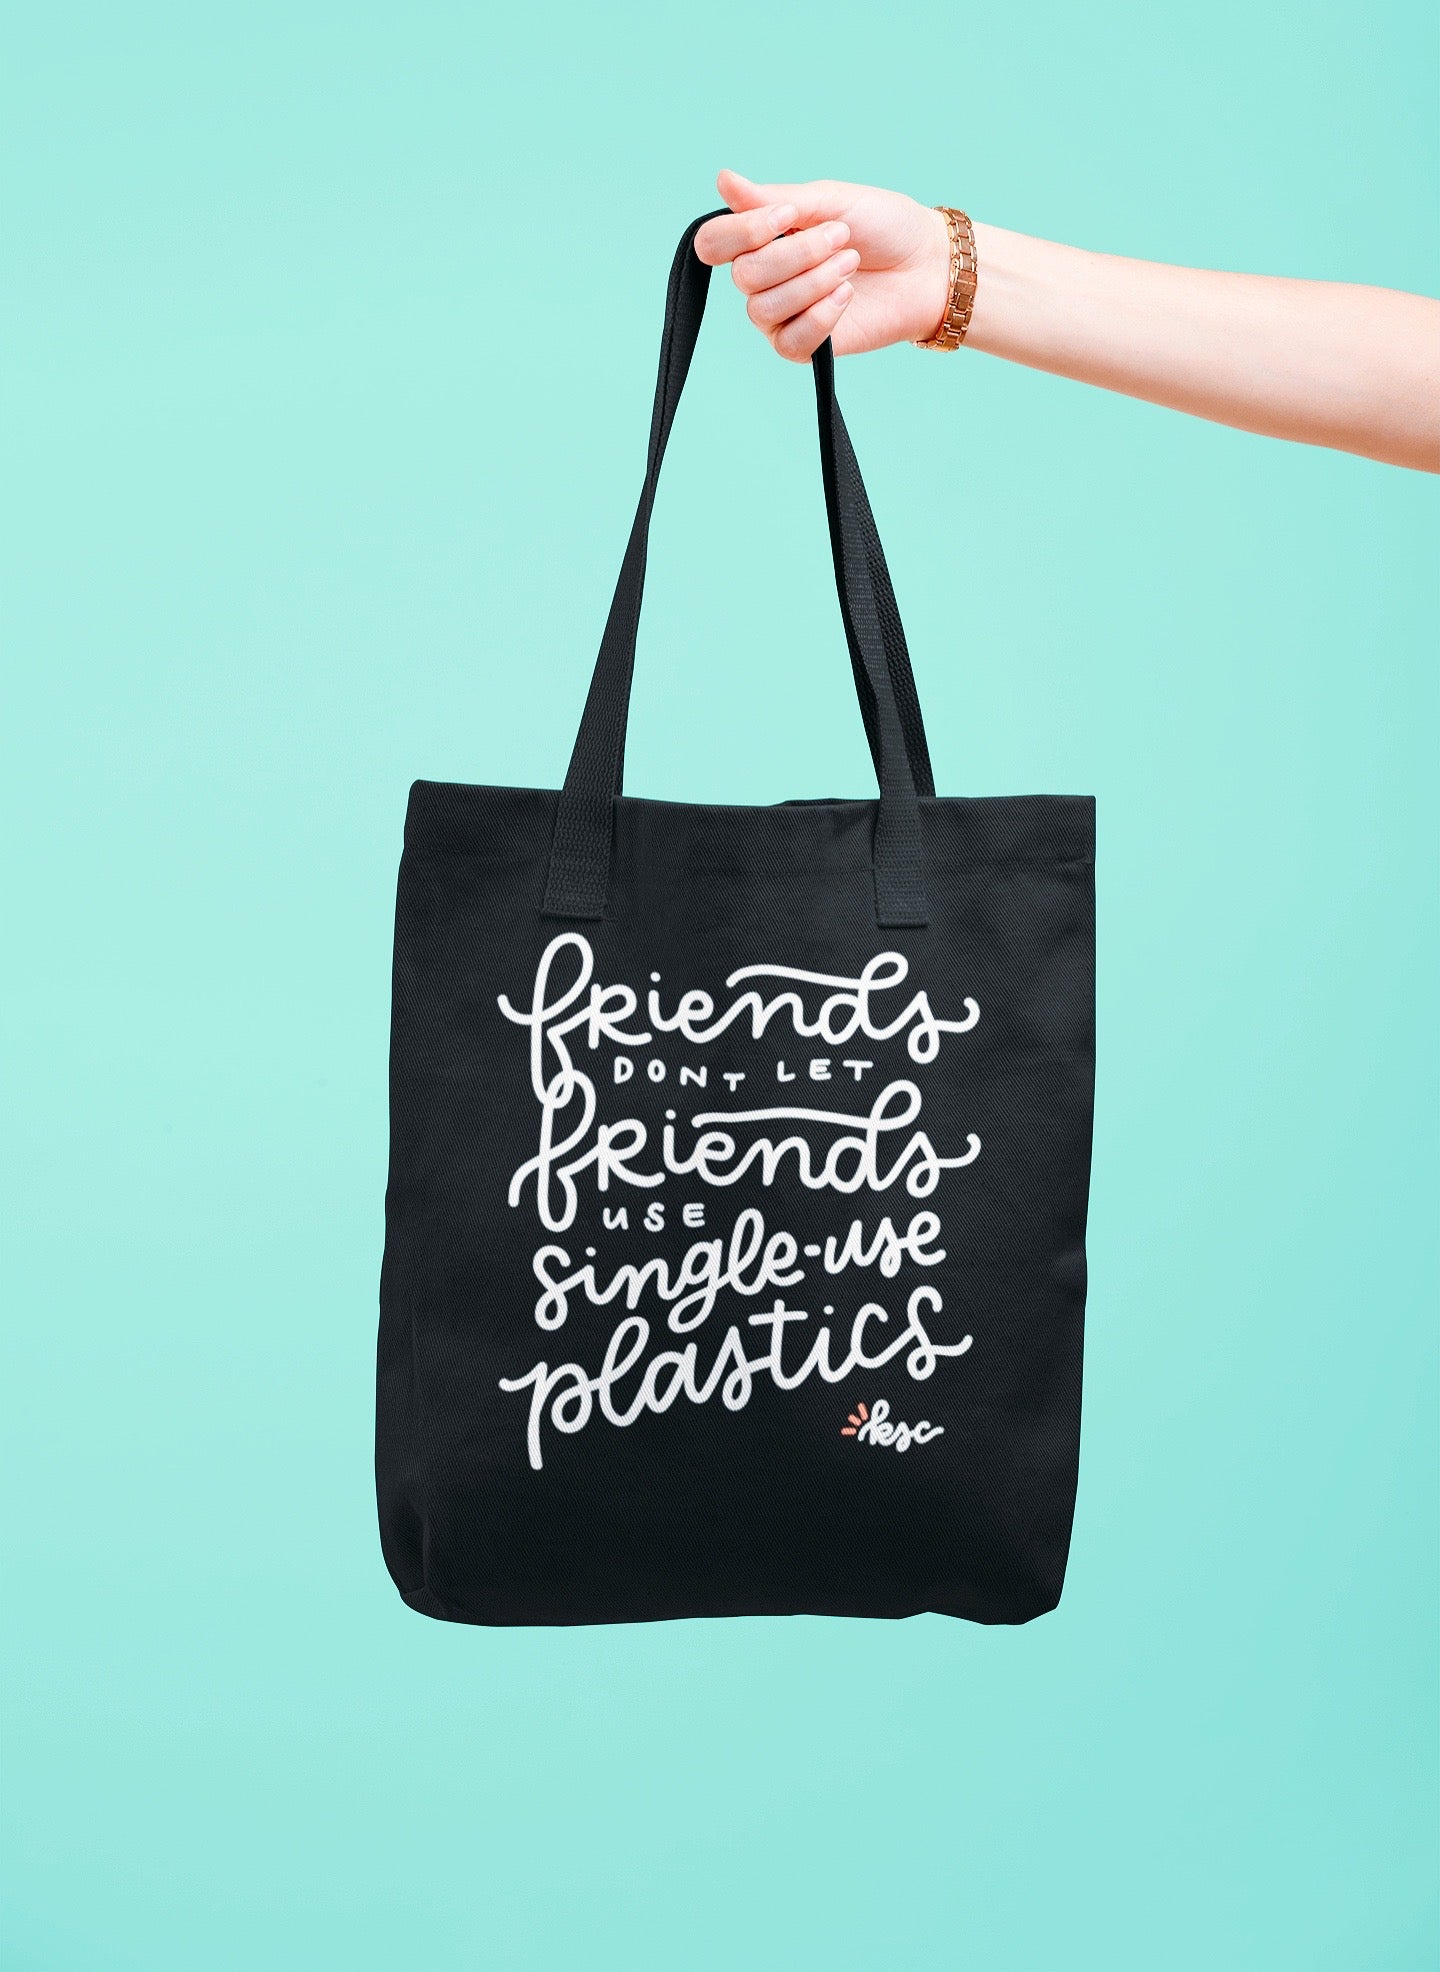 Hand holding a black Eco Tote with the eco-friends design on it in front of a teal background | Kerra Sun Creative